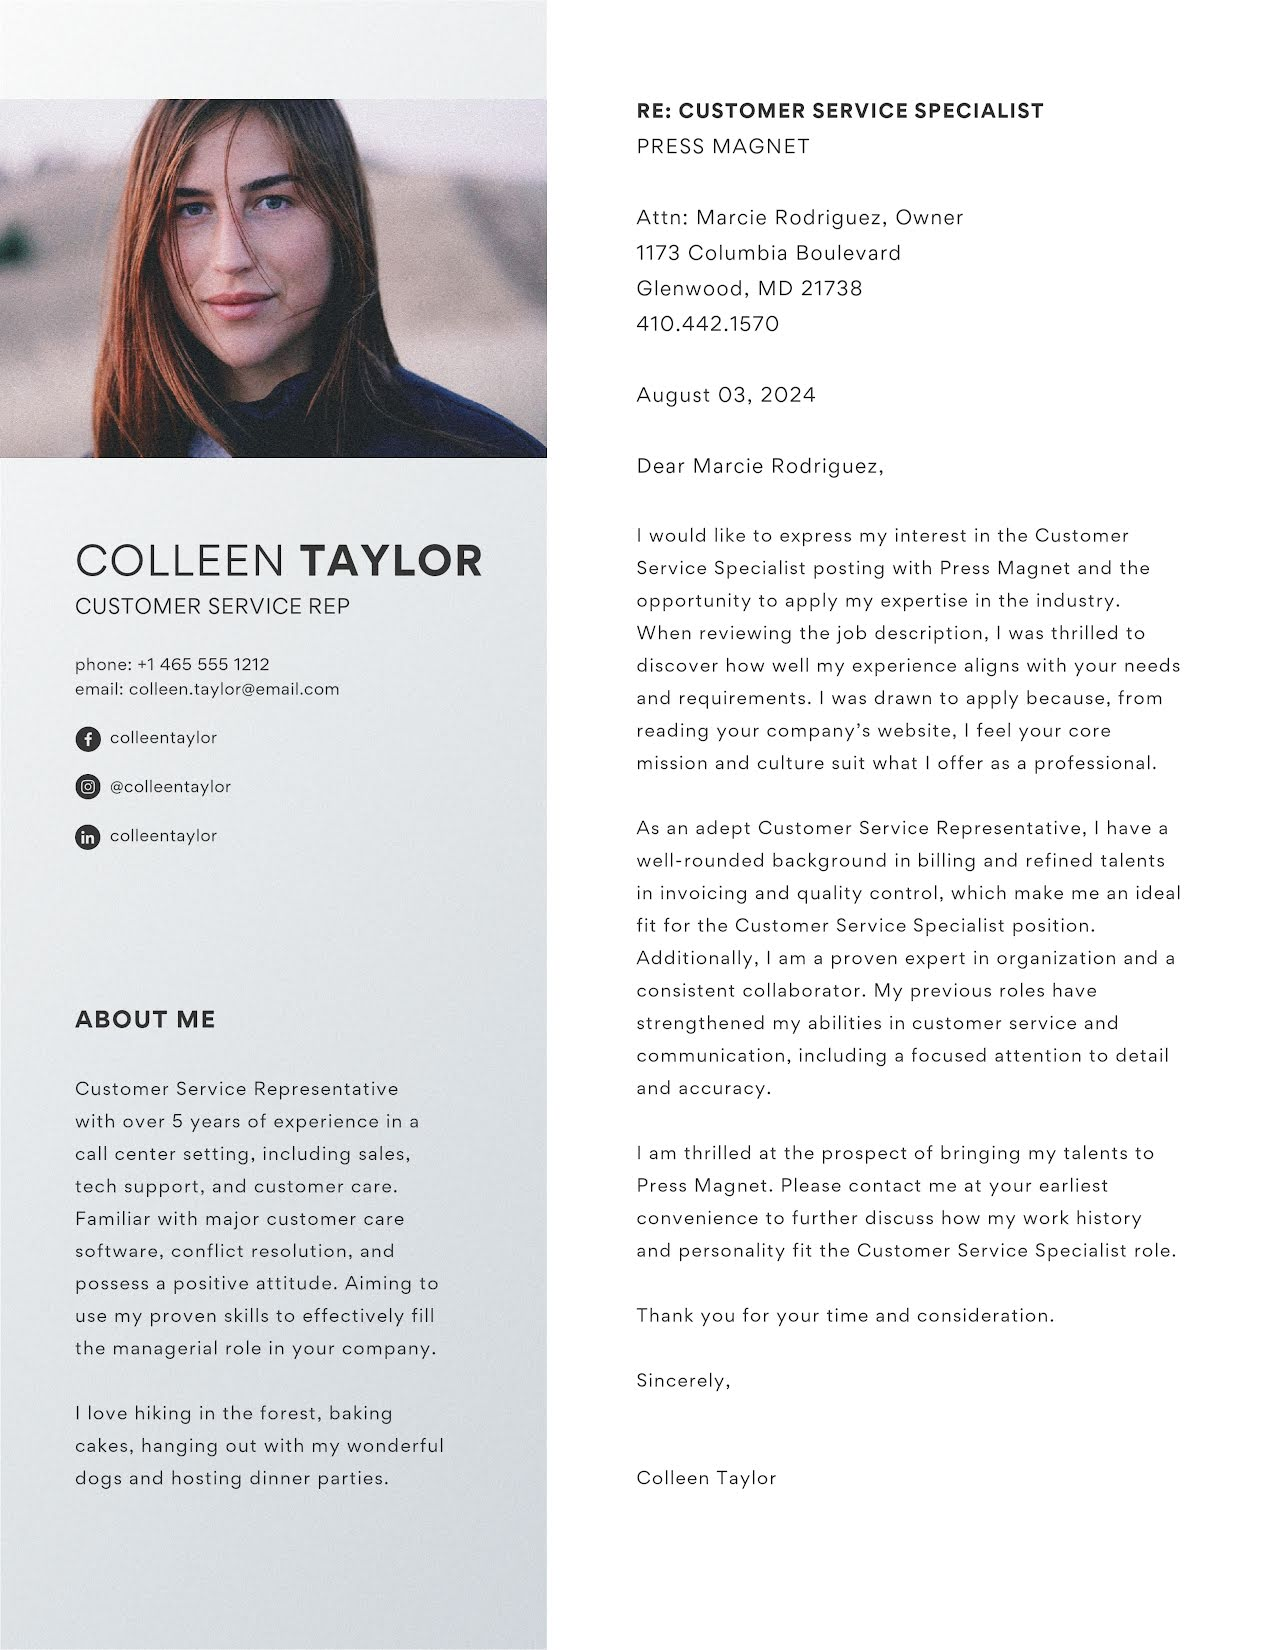 Colleen Taylor - Cover Letter Template